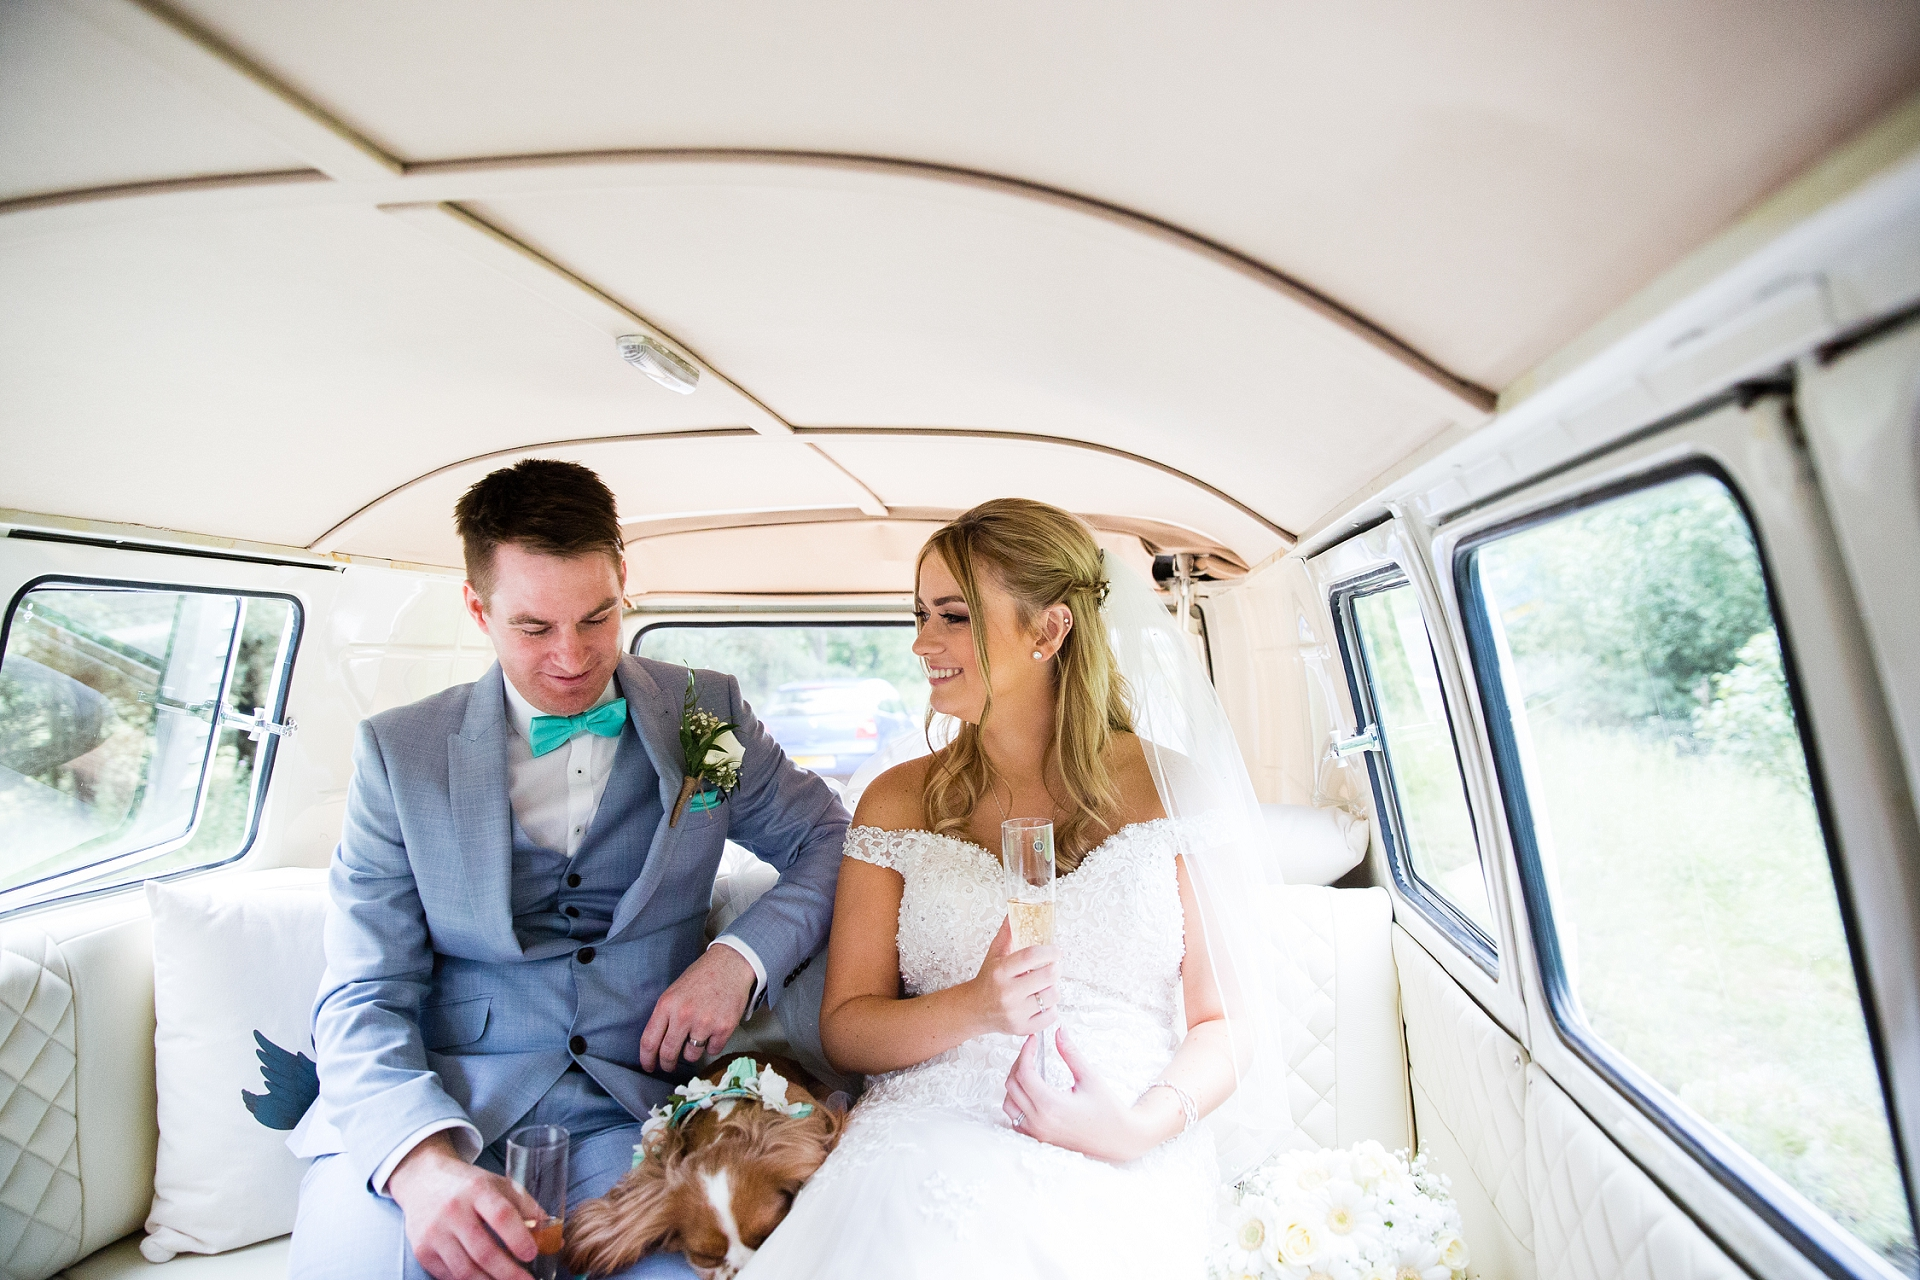 Bride and groom in a camper